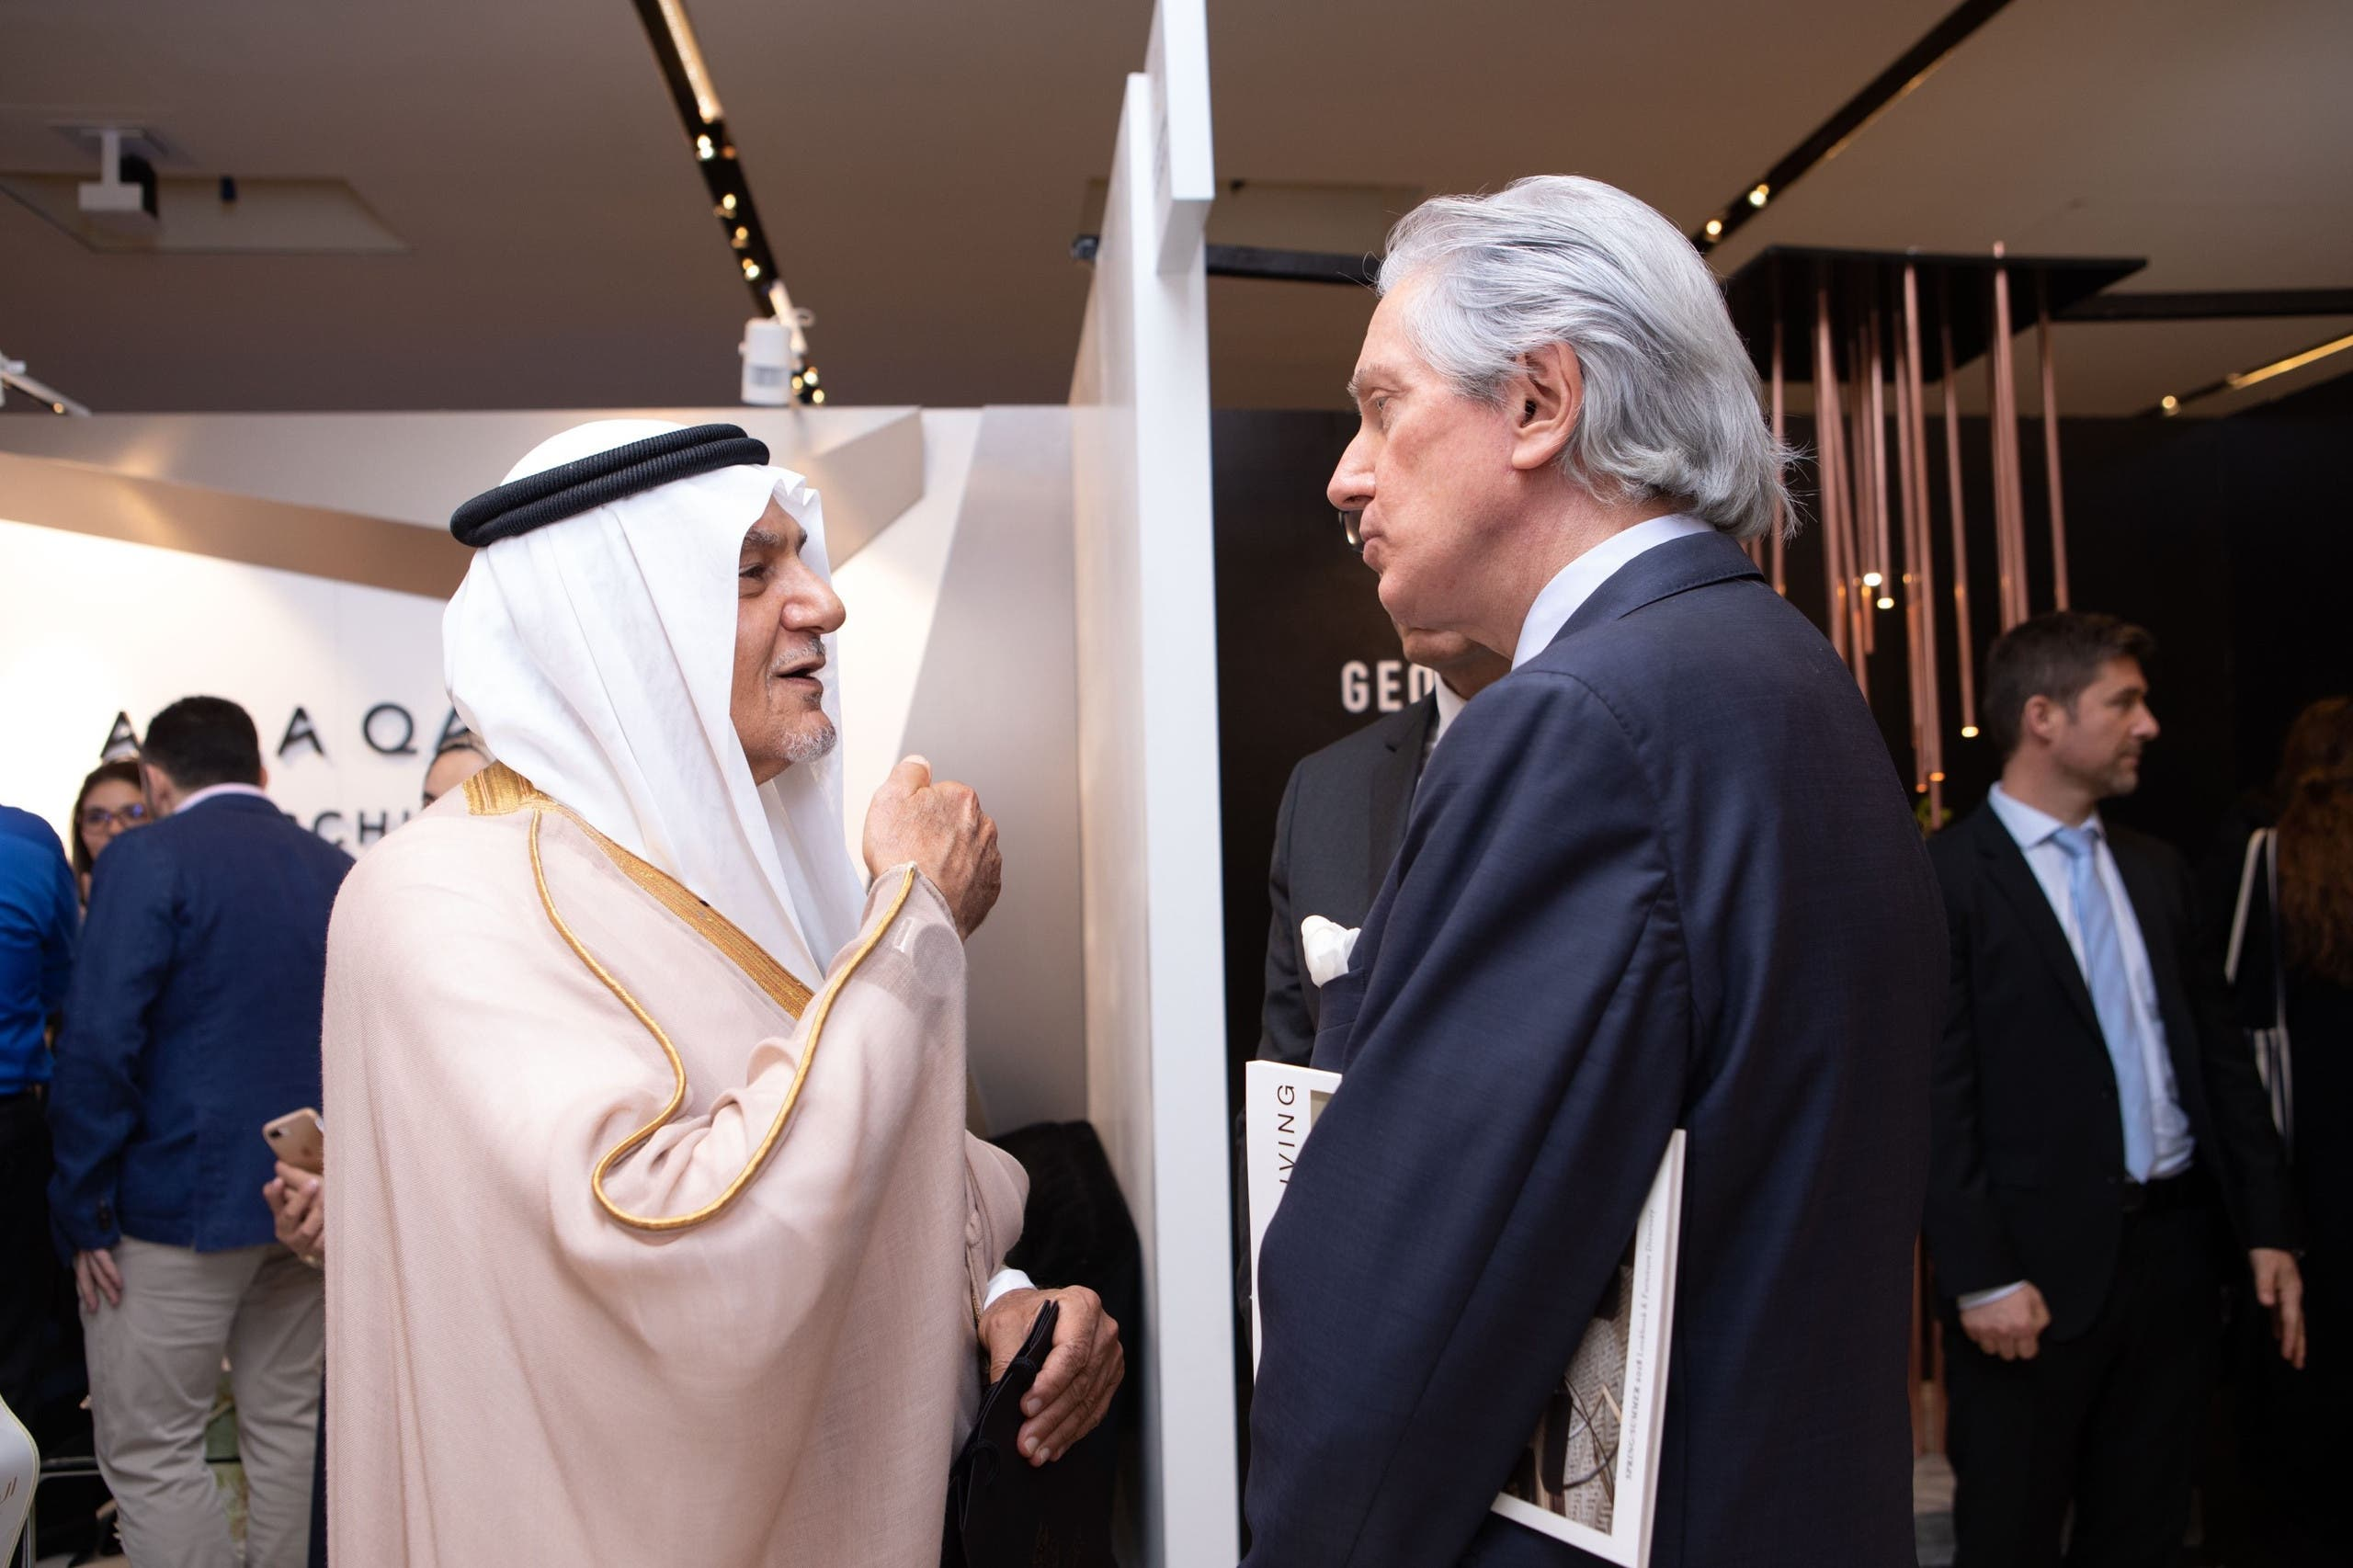 Prince Turki al-Faisal and French Ambassador to Saudi Arabia François Gouyette enjoy a conversation on the sidelines of the openings day Saudi Design Week. (Photo: Abdulmajeed Alrowdan)